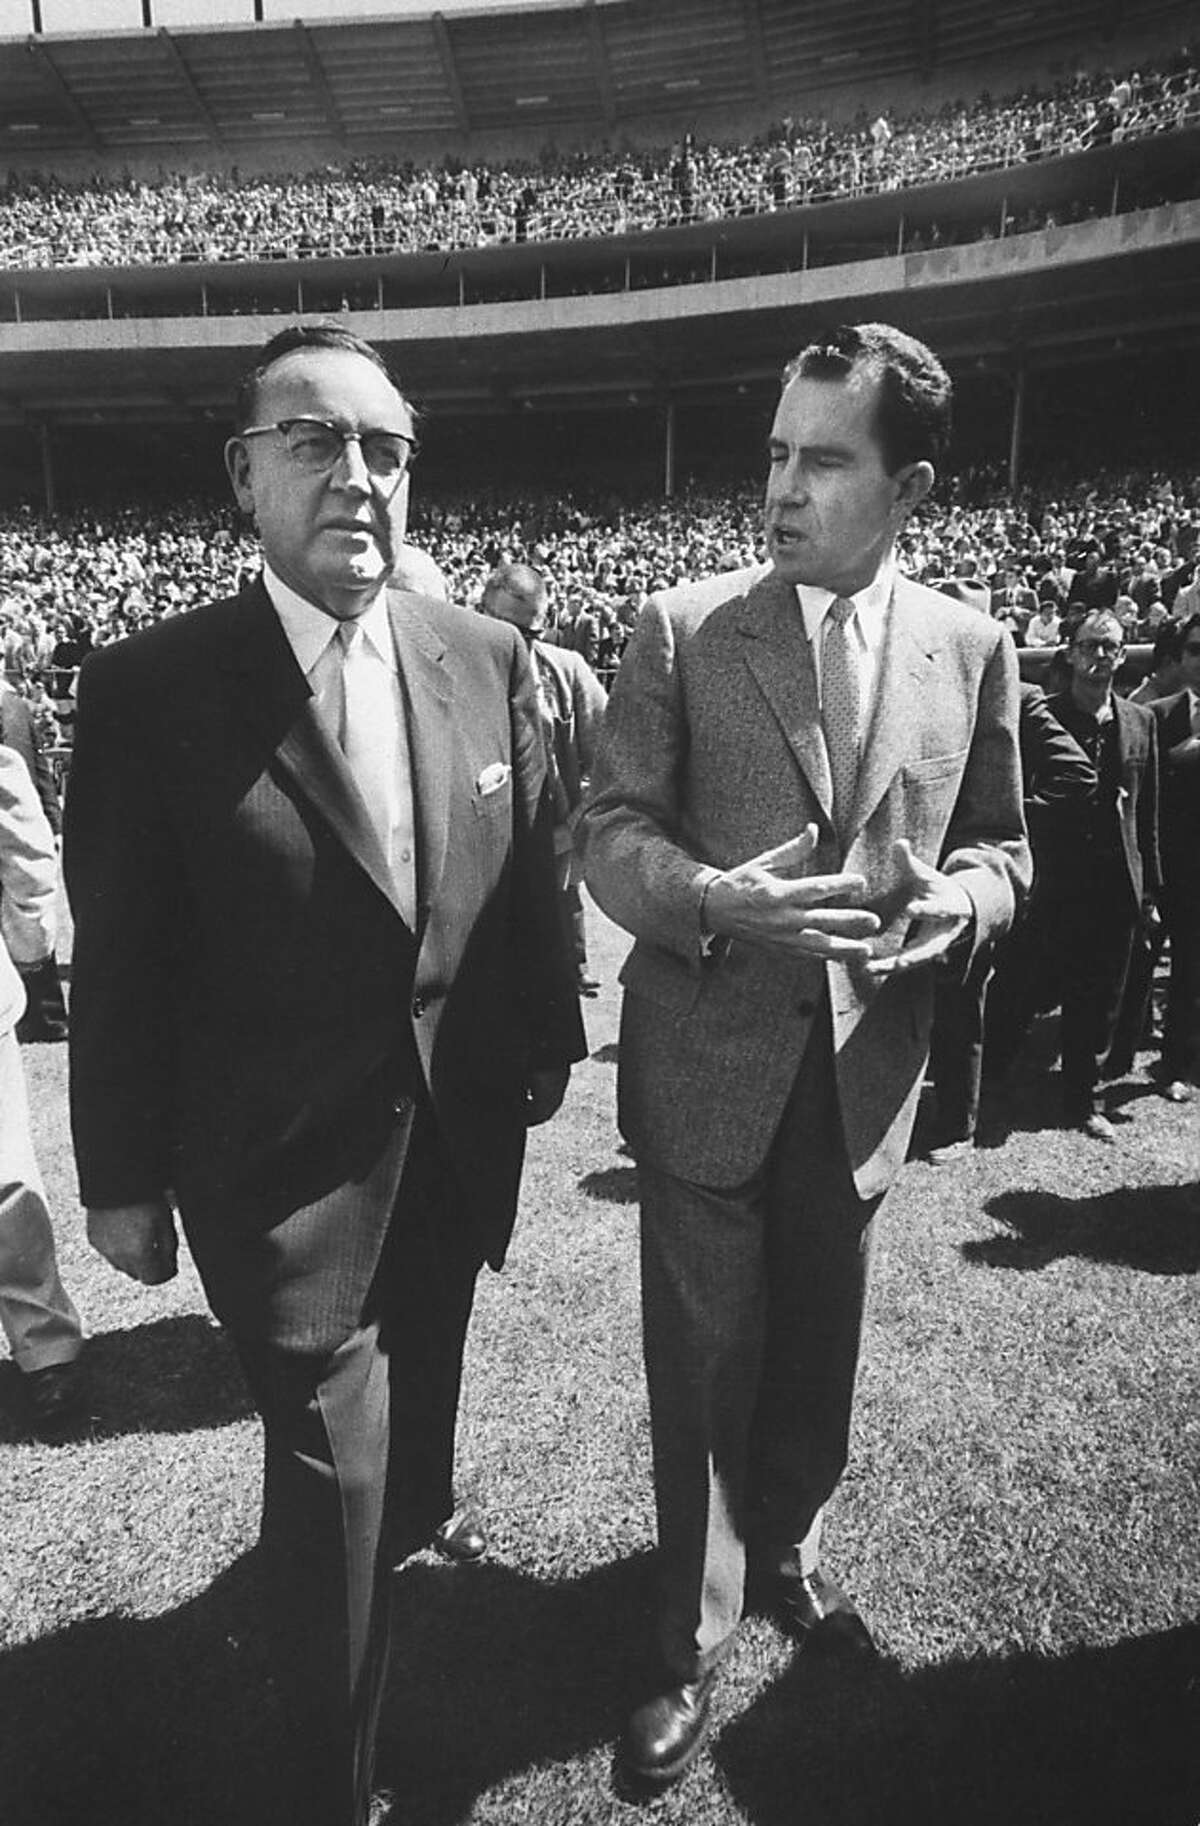 Gov. Pat Brown (L) and Richared M. Nixon (R) the ceremonies at opening game in Candlestick Park. (Photo by Bill Bridges//Time Life Pictures/Getty Images)